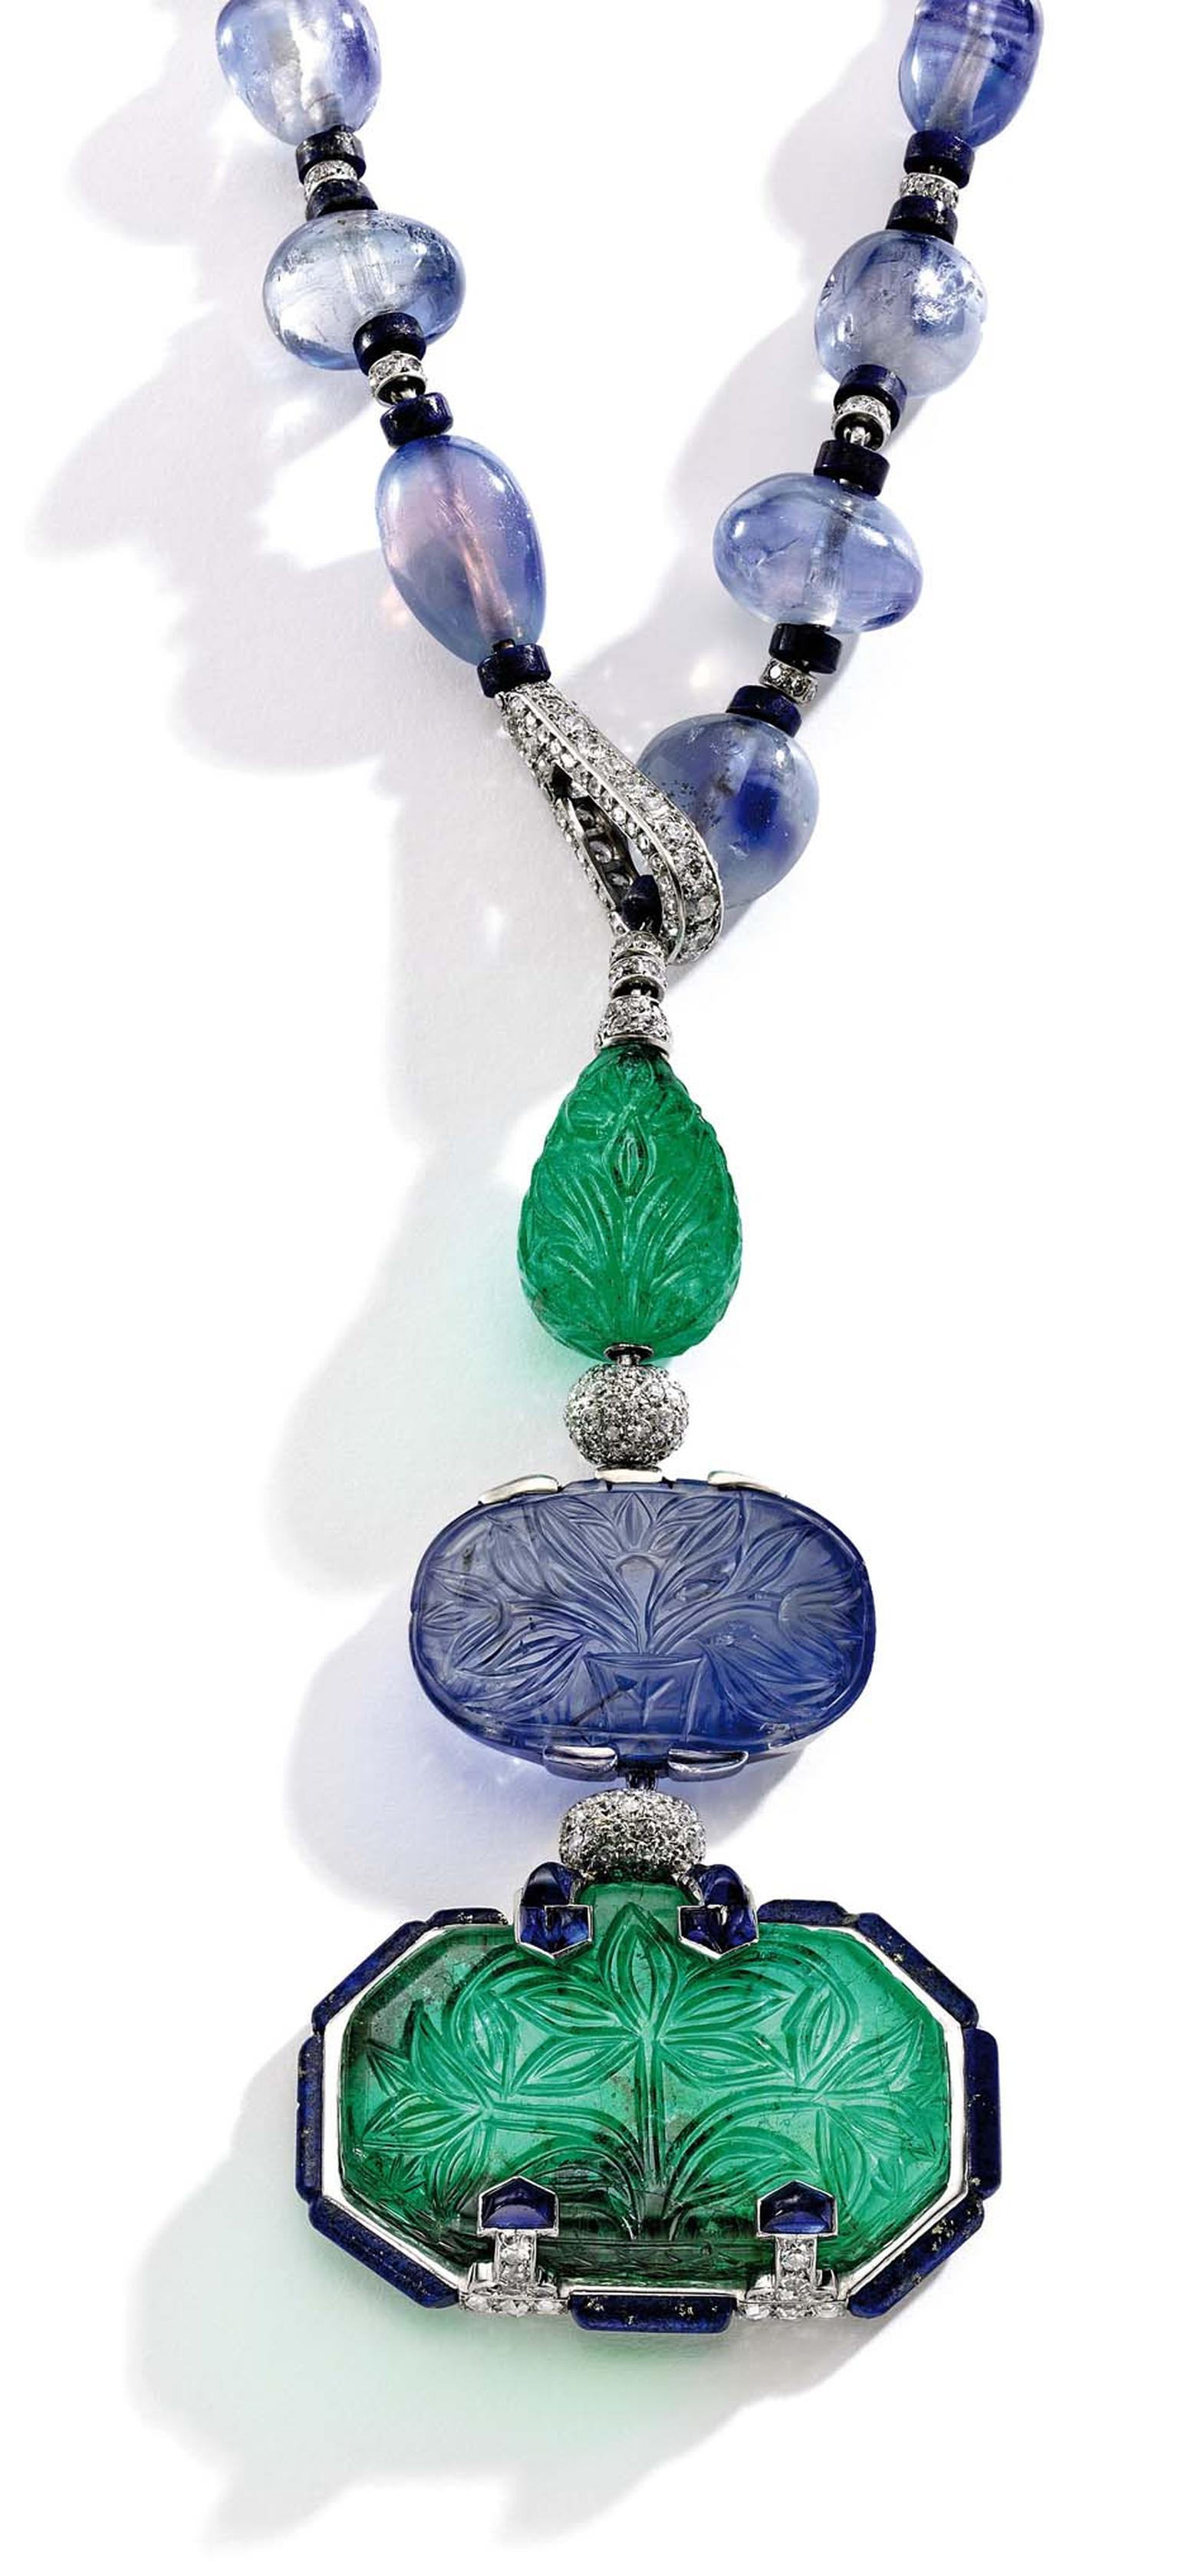 This platinum, emerald, sapphire, lapis lazuli and diamond Cartier necklace, designed by Charles Jacqueau circa 1924, used to belong to the wife of Baron Eugene de Rothschild. It sold to an online bidder for $2.6 million.